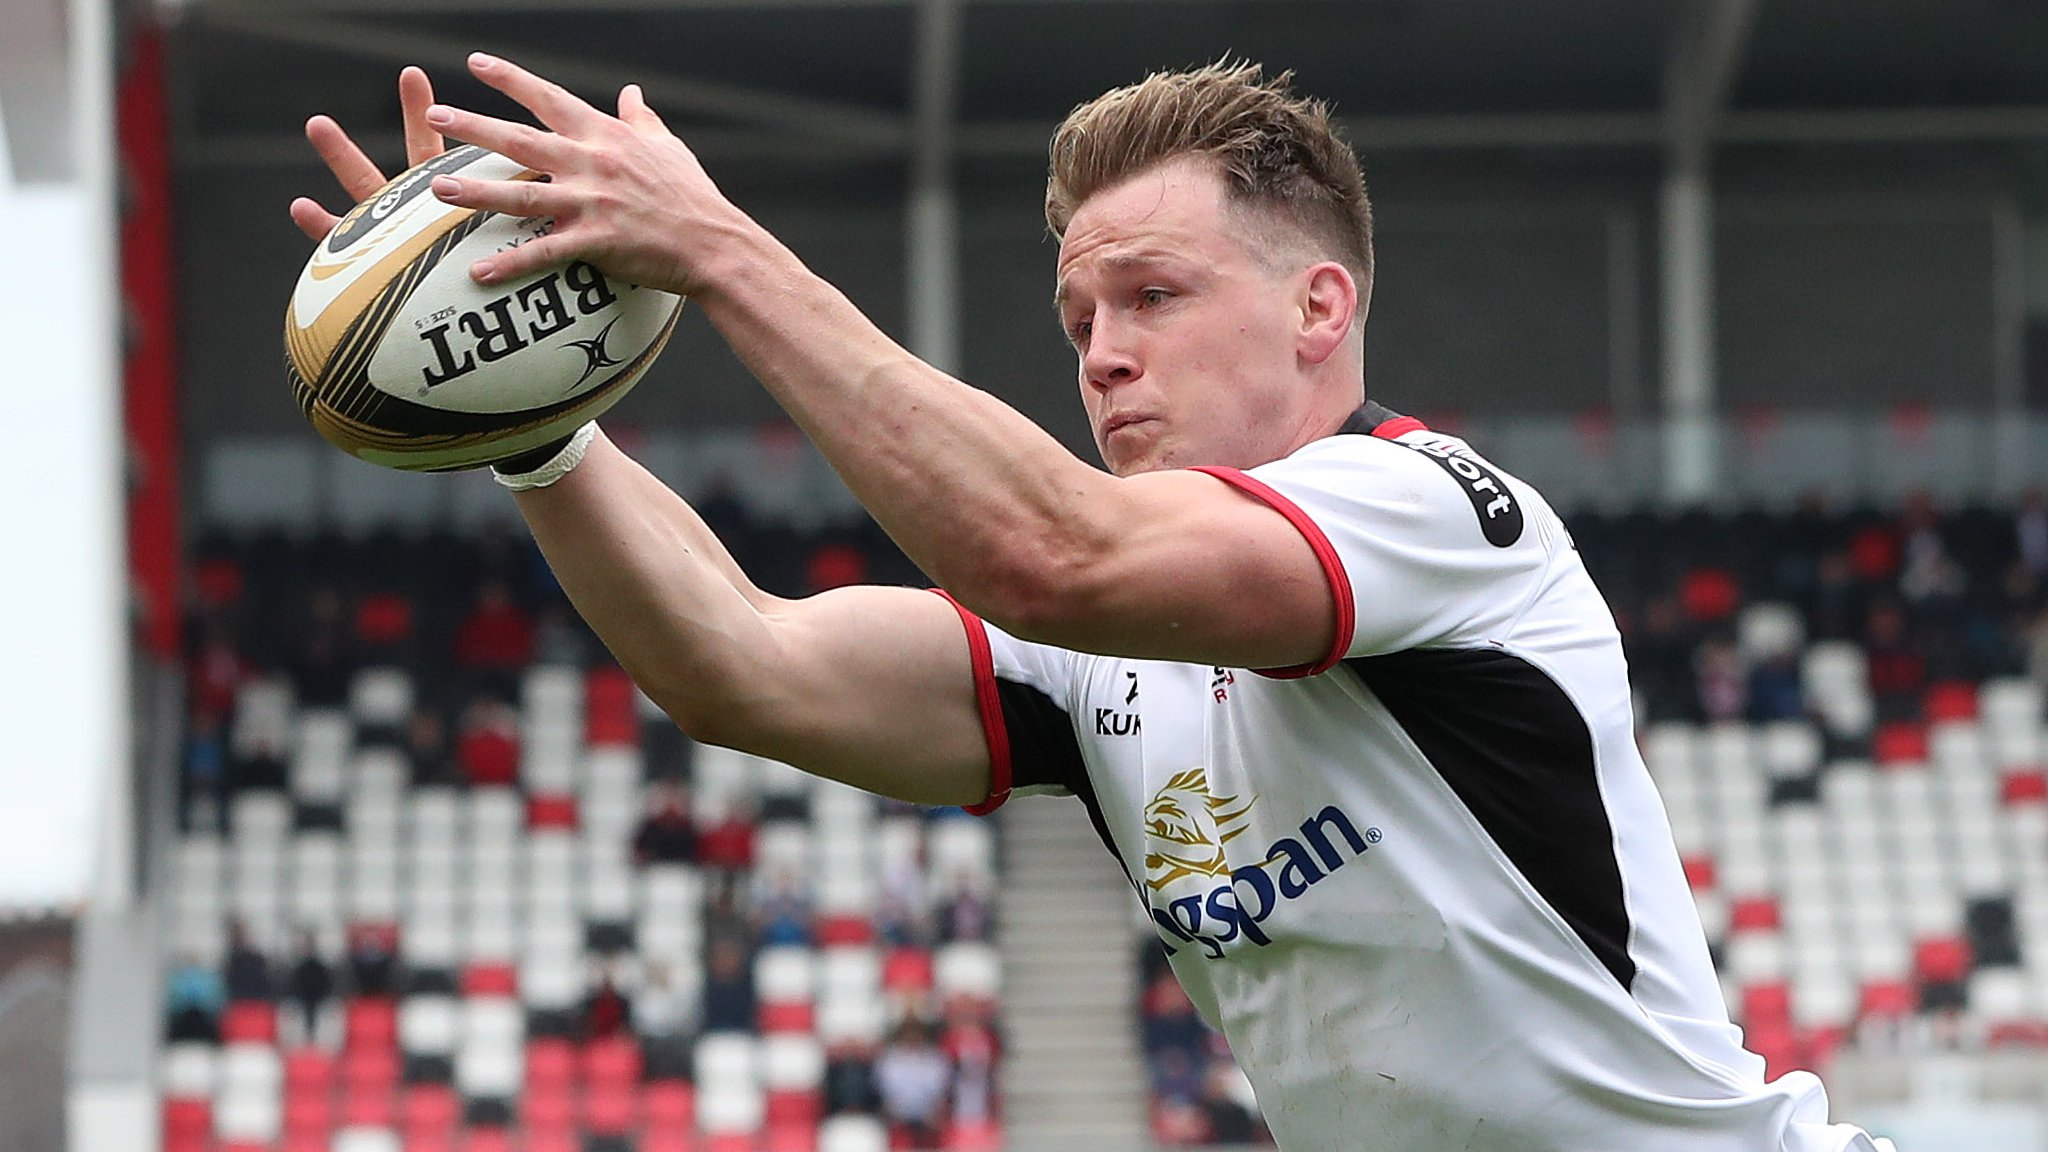 Ulster take final Champions Cup place with win over Ospreys